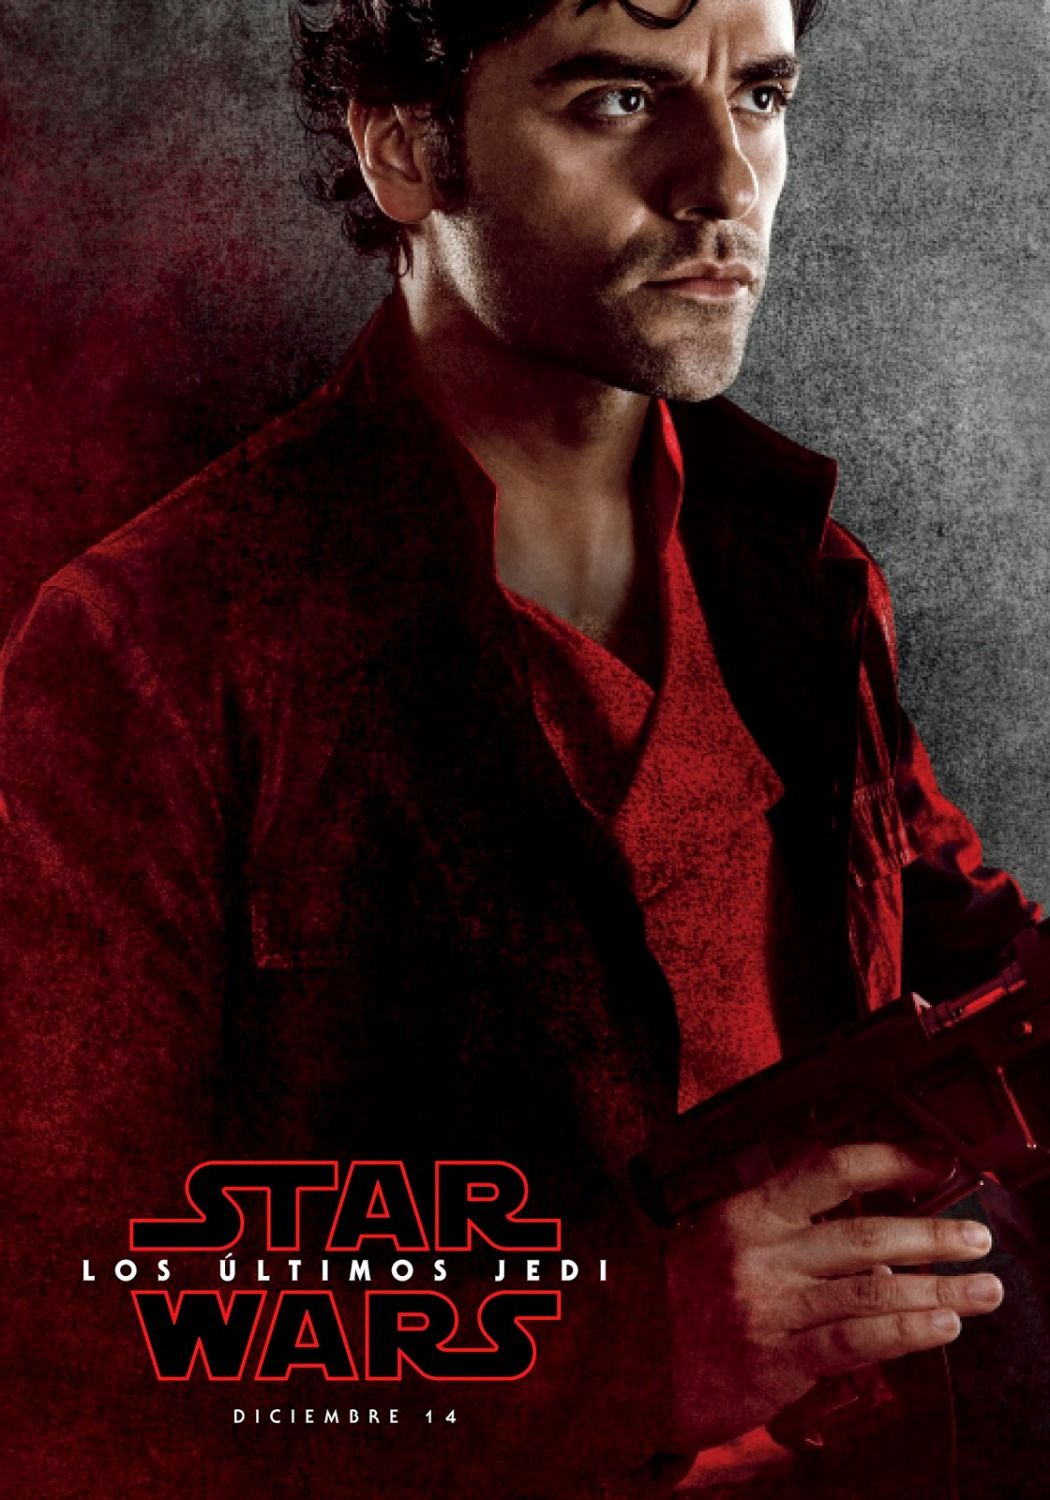 Star Wars The Last Jedi Trailers Tv Spots Featurettes Images And Posters Star Wars Fandom Star Wars Images Star Wars Poster